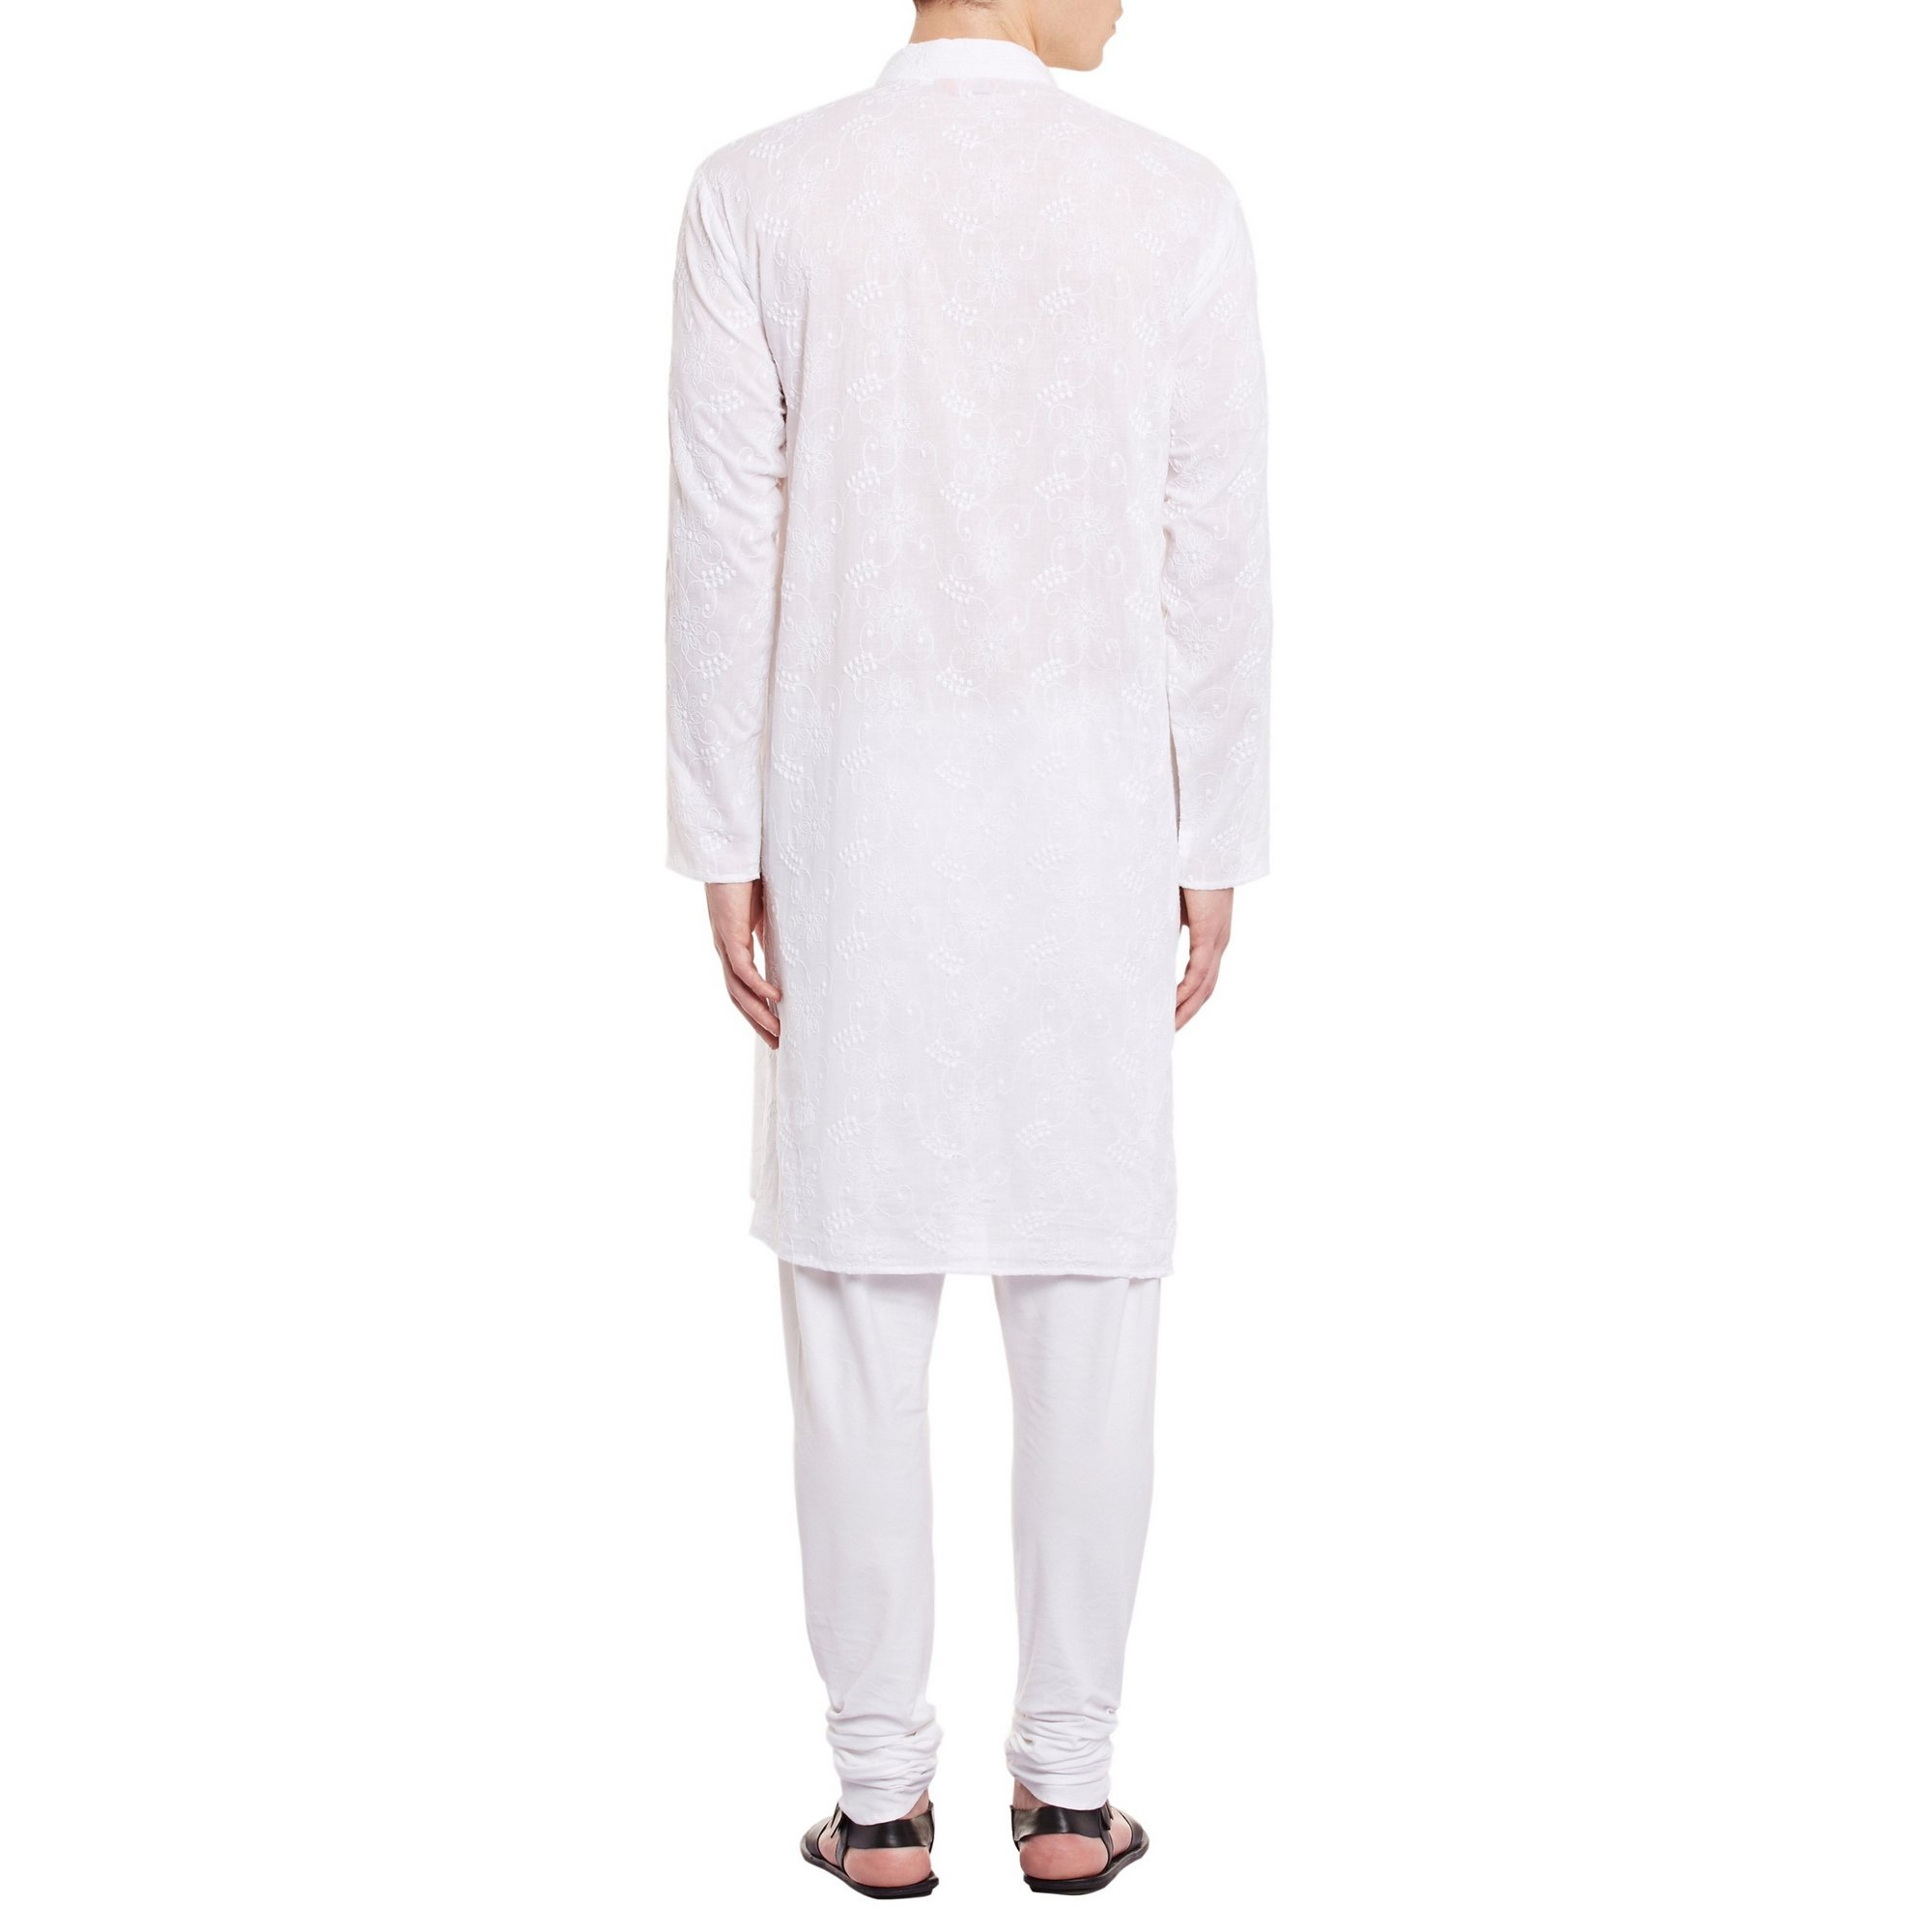 ShalinIndia Mens Embroidered Cutwork Cotton Kurta With Churidar Pajama Trousers Machine Embroidery,White Chest Size: 42 Inch by ShalinIndia (Image #2)